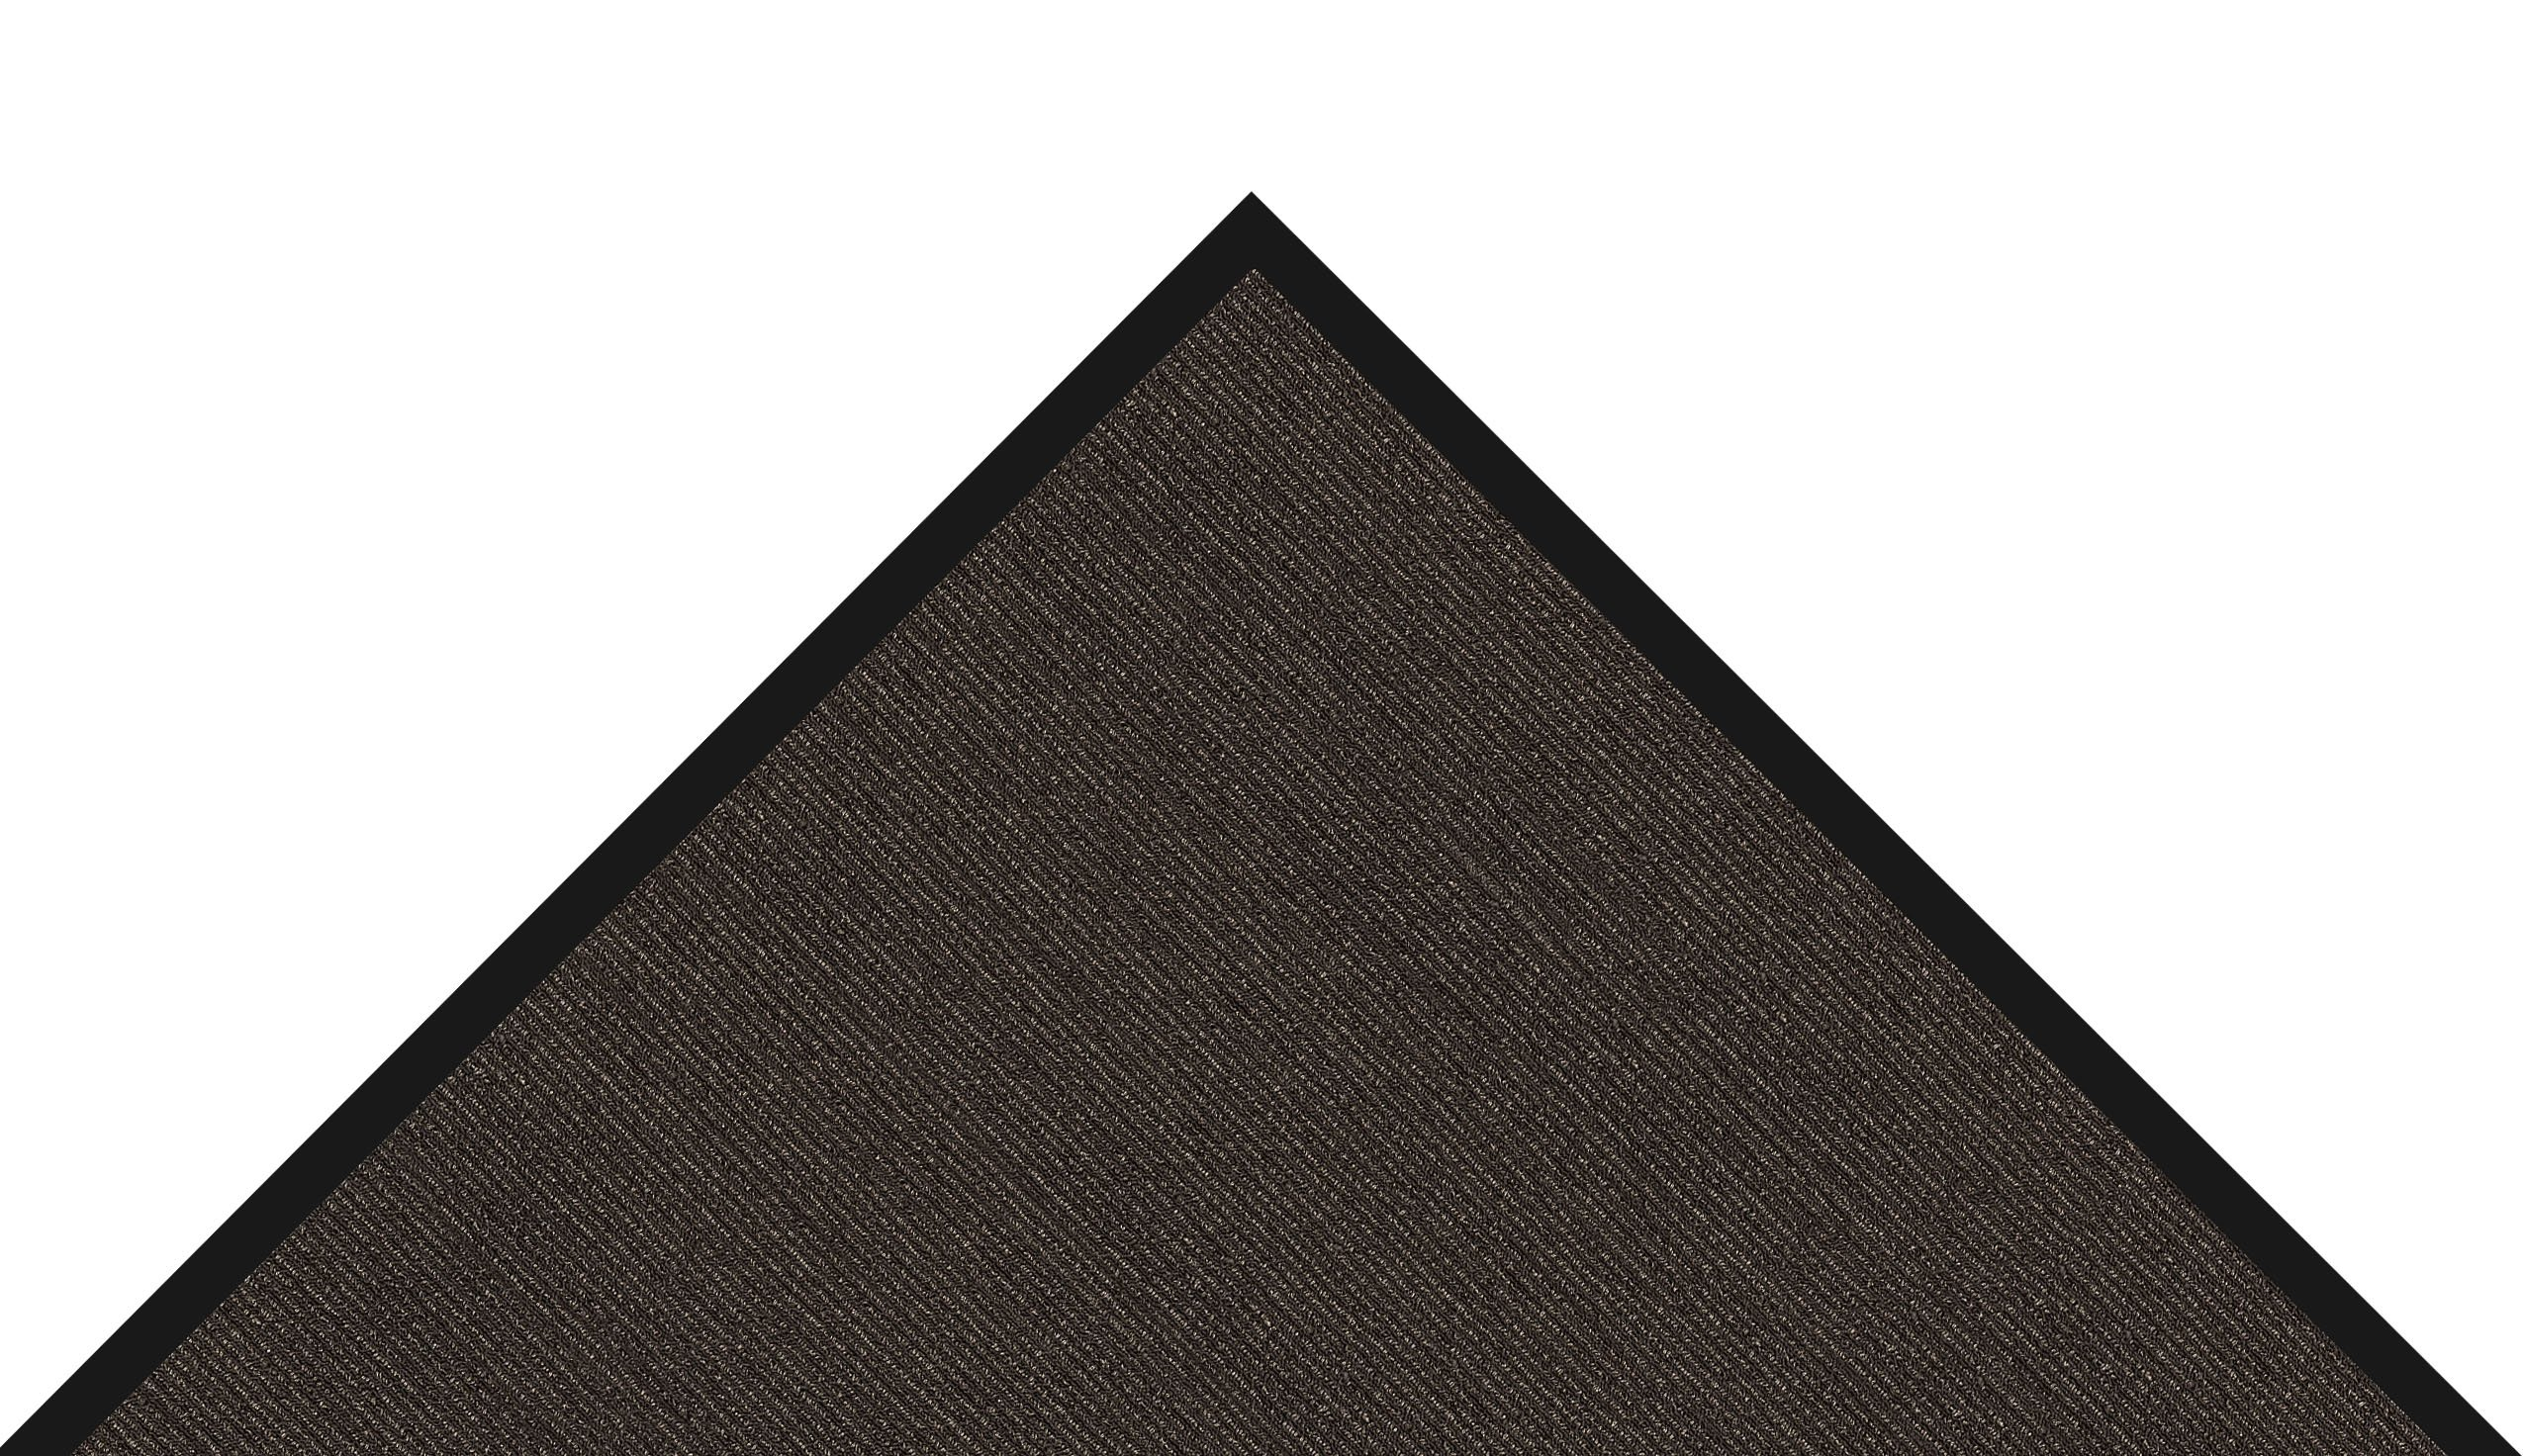 Notrax 146 Encore Entrance Mat, for Inside Foyer Area, 3' Width x 10' Length x 5/16'' Thickness, Black